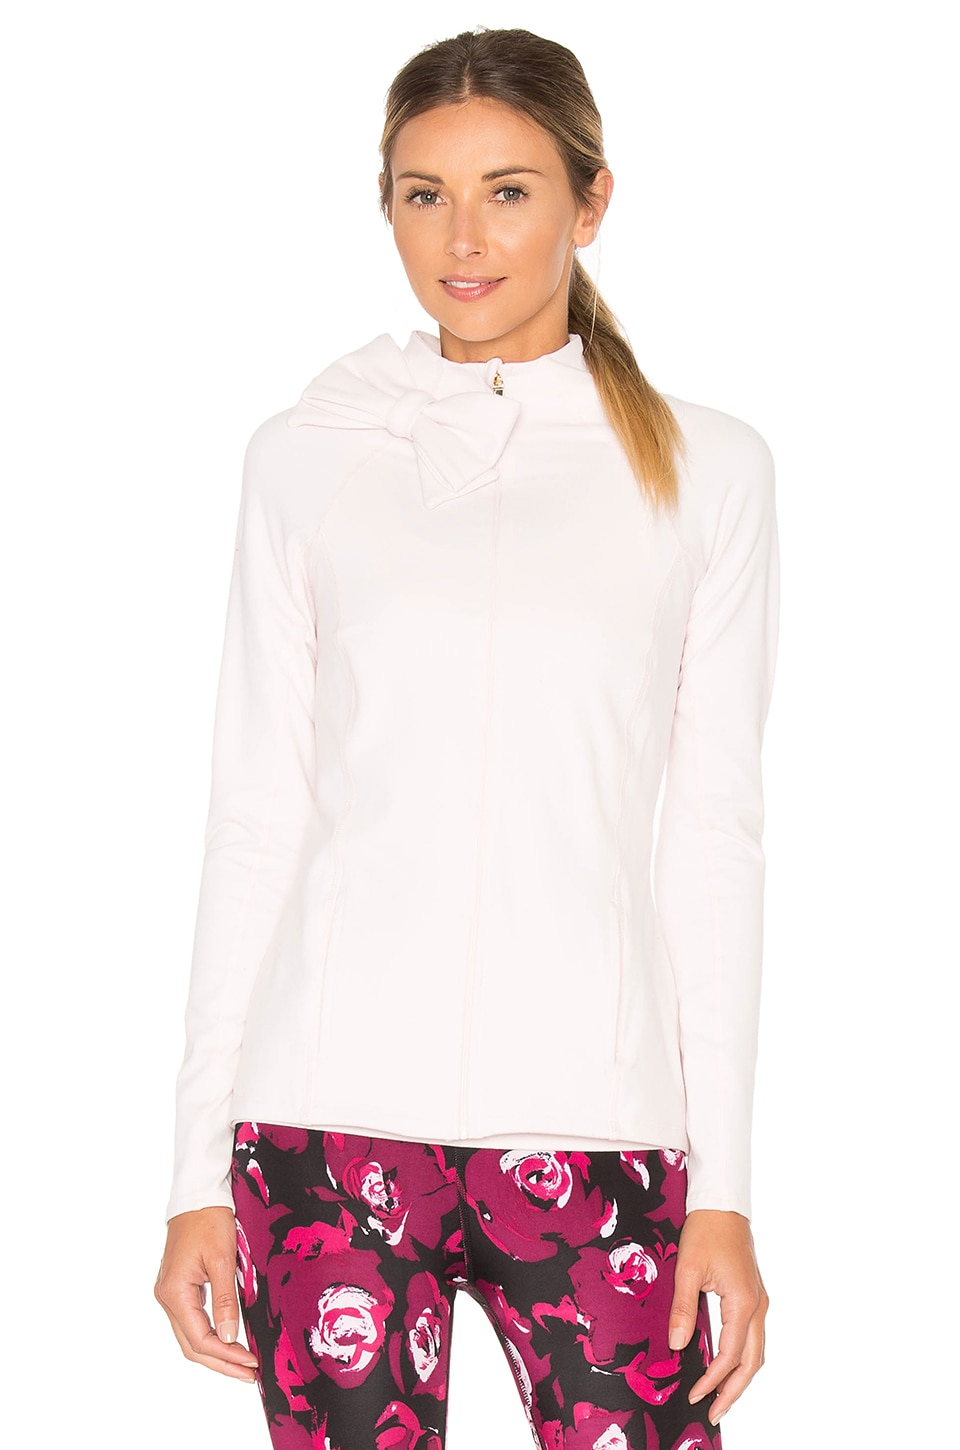 x Kate Spade Neck Bow Jacket by Beyond Yoga